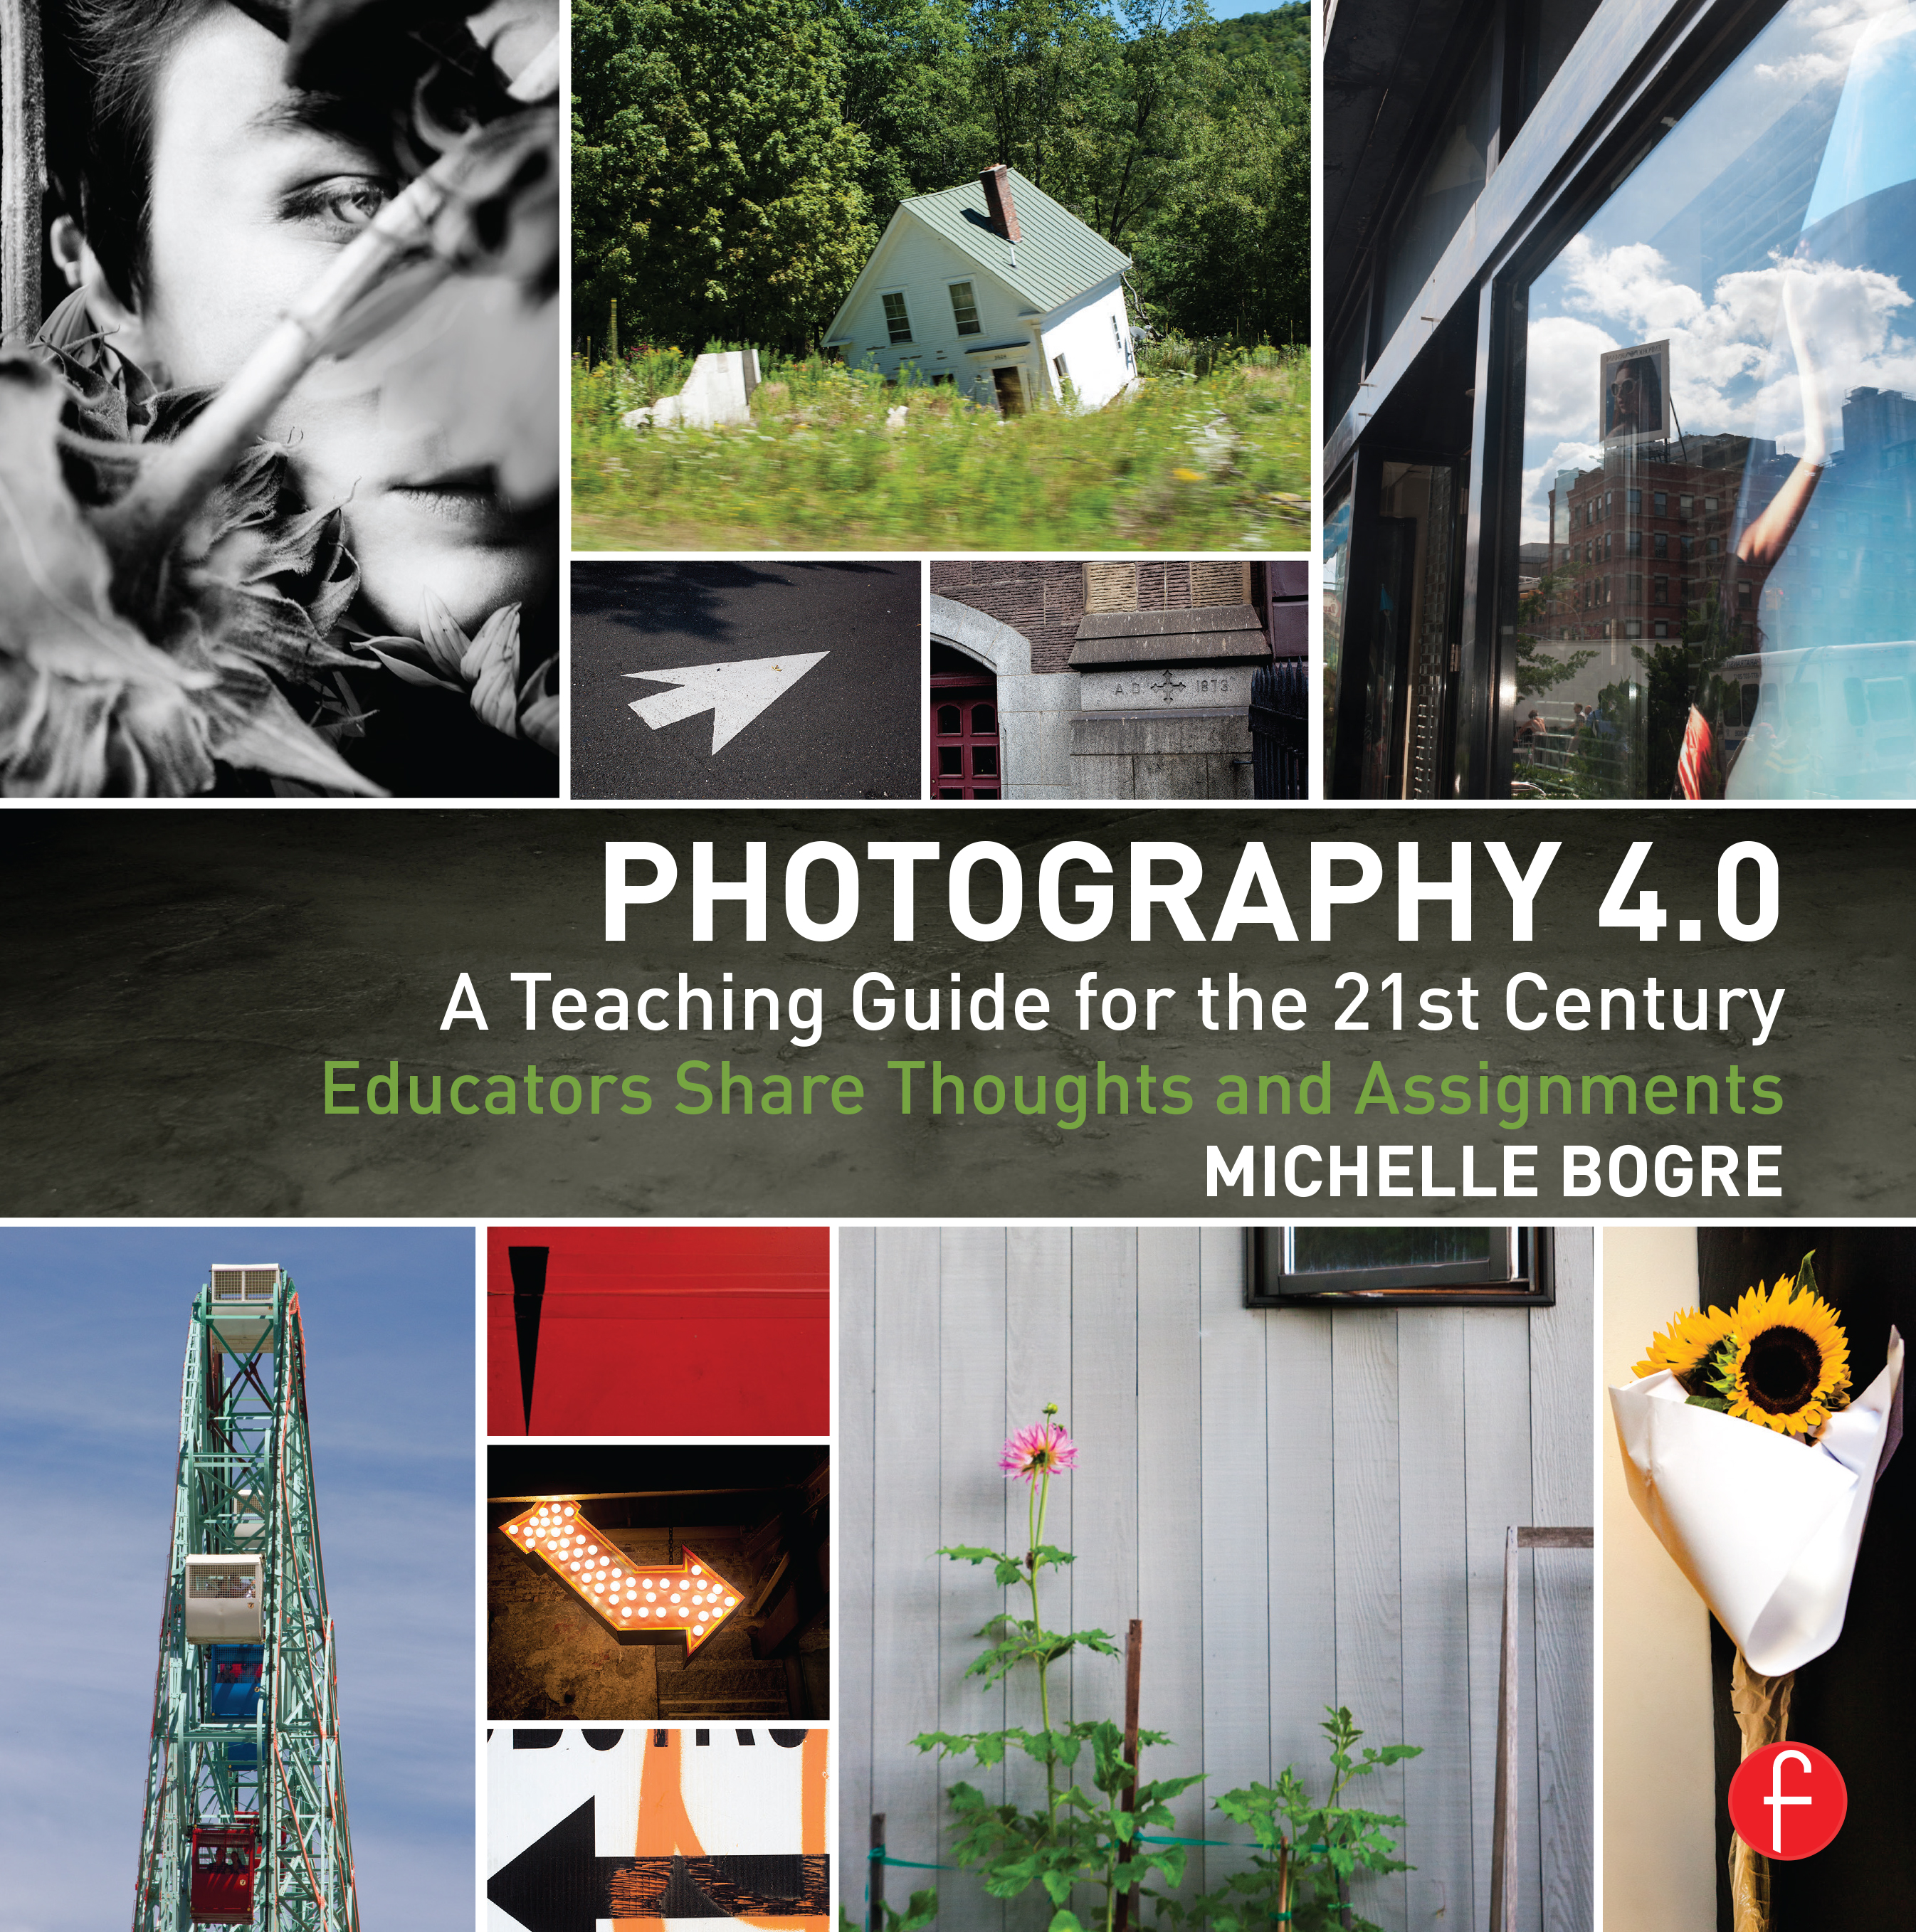 Photography 4.0: A Teaching Guide for the 21st Century: Educators Share Thoughts and Assignments book cover